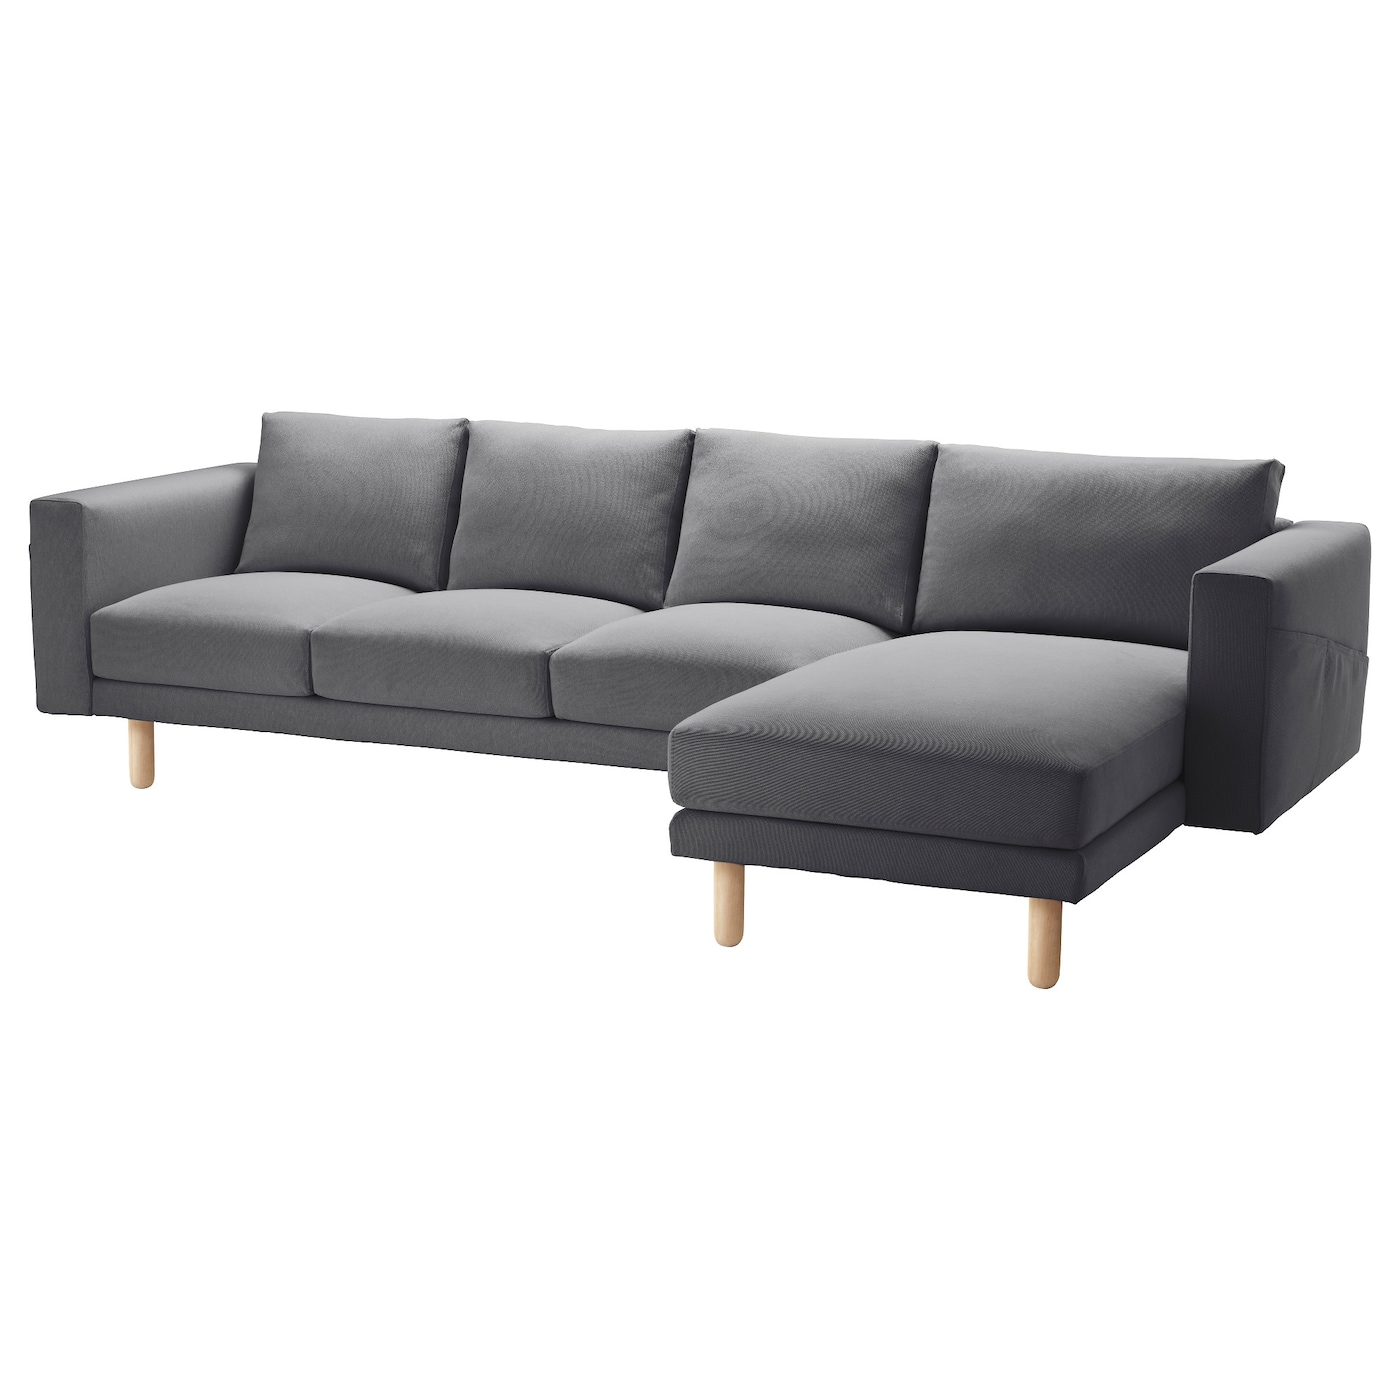 Norsborg cover 3 seat sofa w chaise longue finnsta dark grey ikea - Chaise longue jardin ikea ...